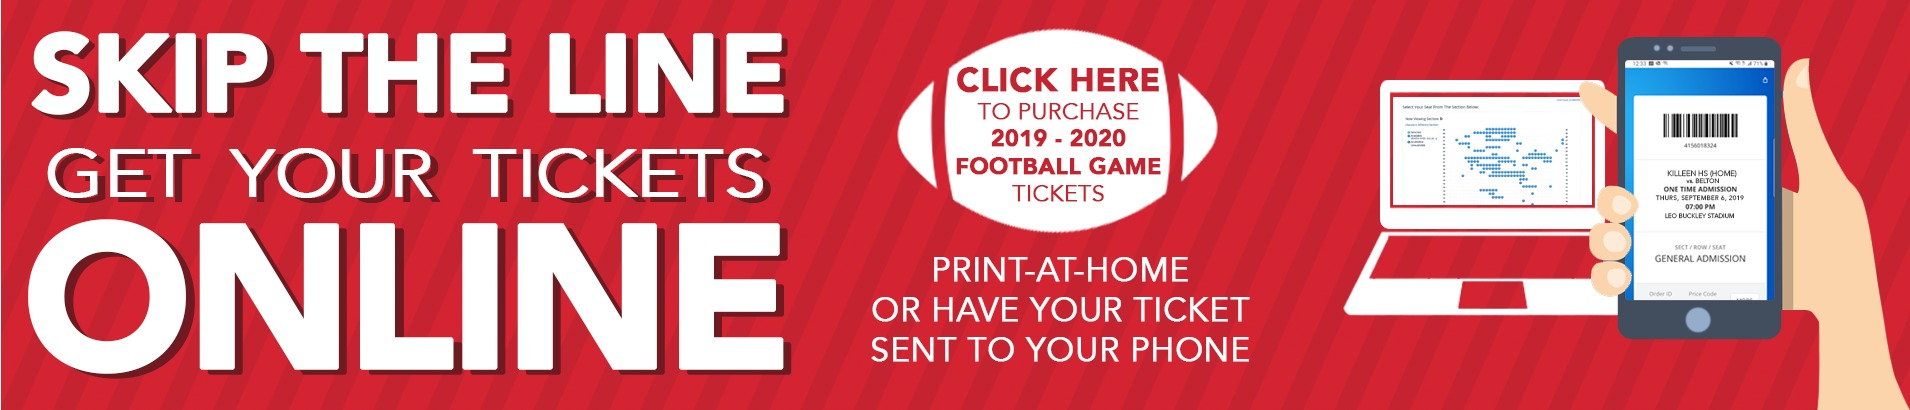 Purchase Football Tickets Online Now, Click Here!